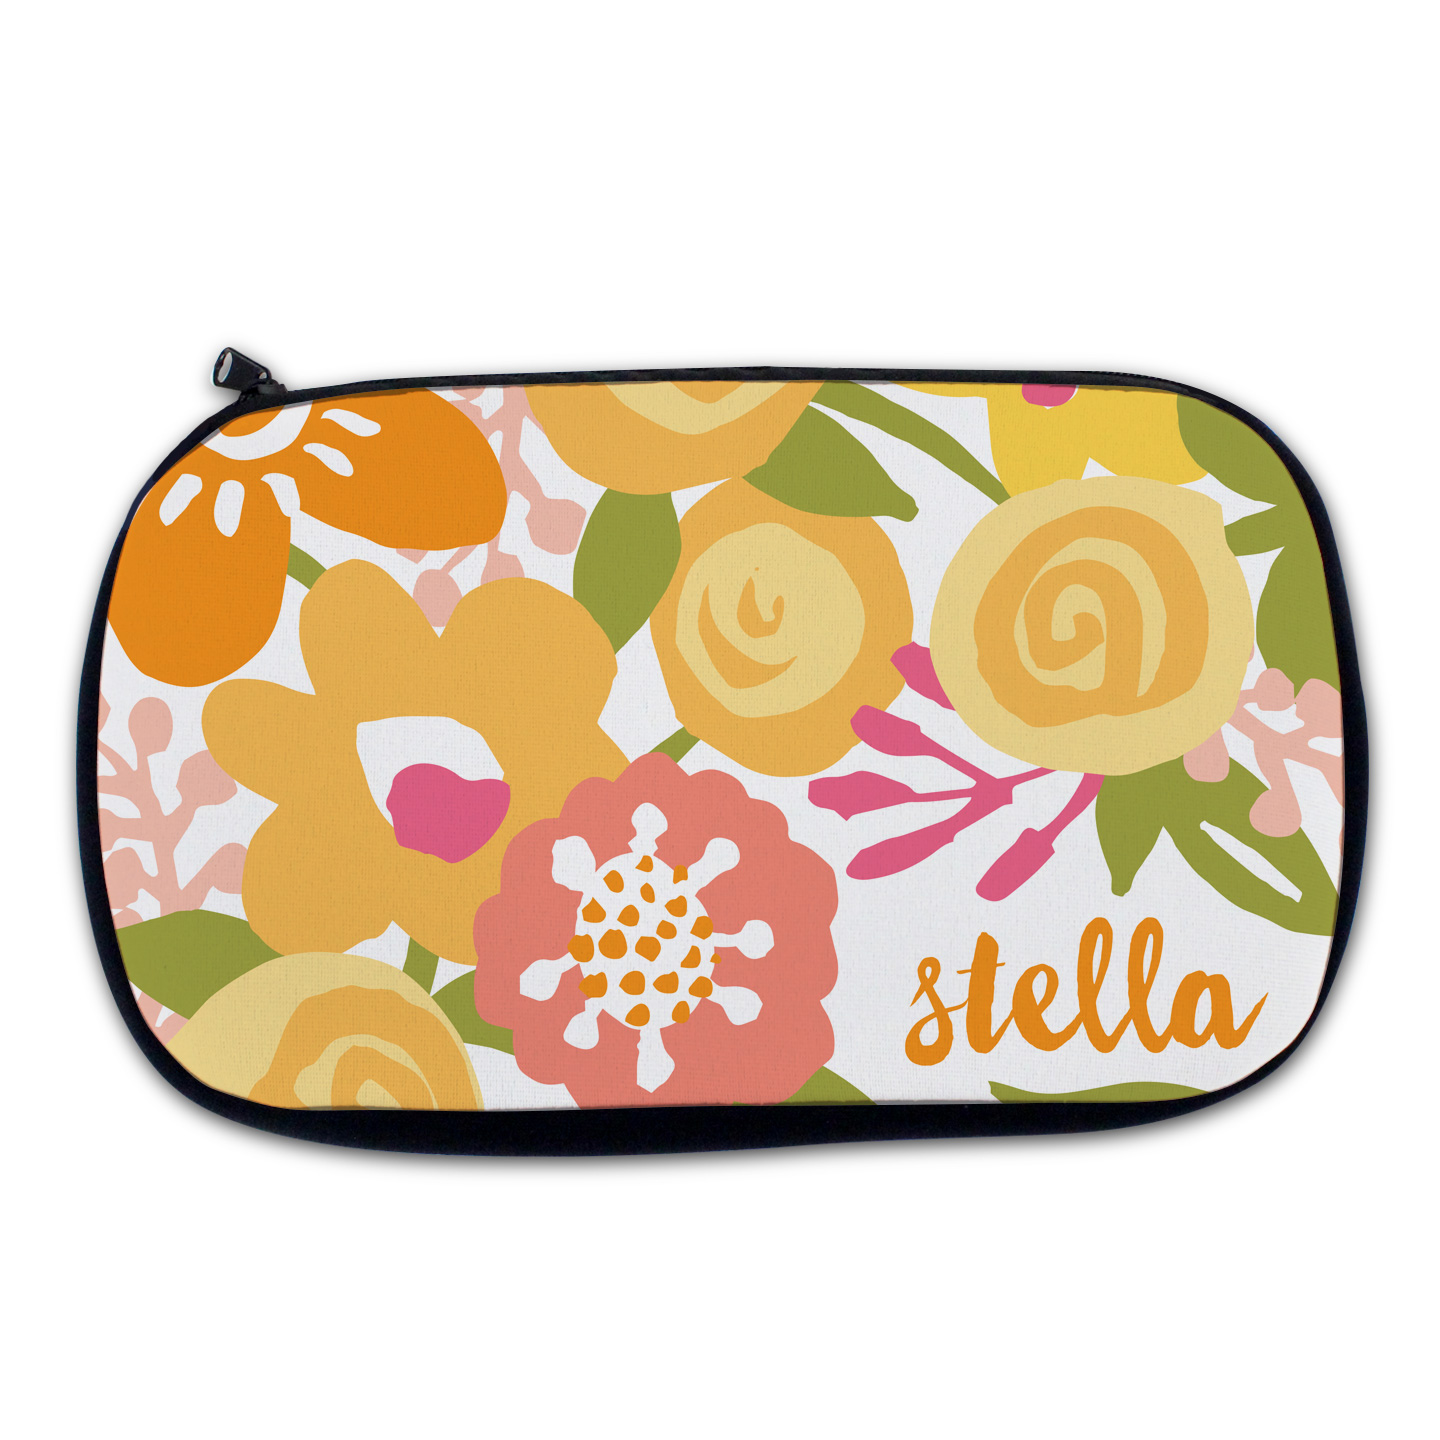 Melon Cosmetic Bag